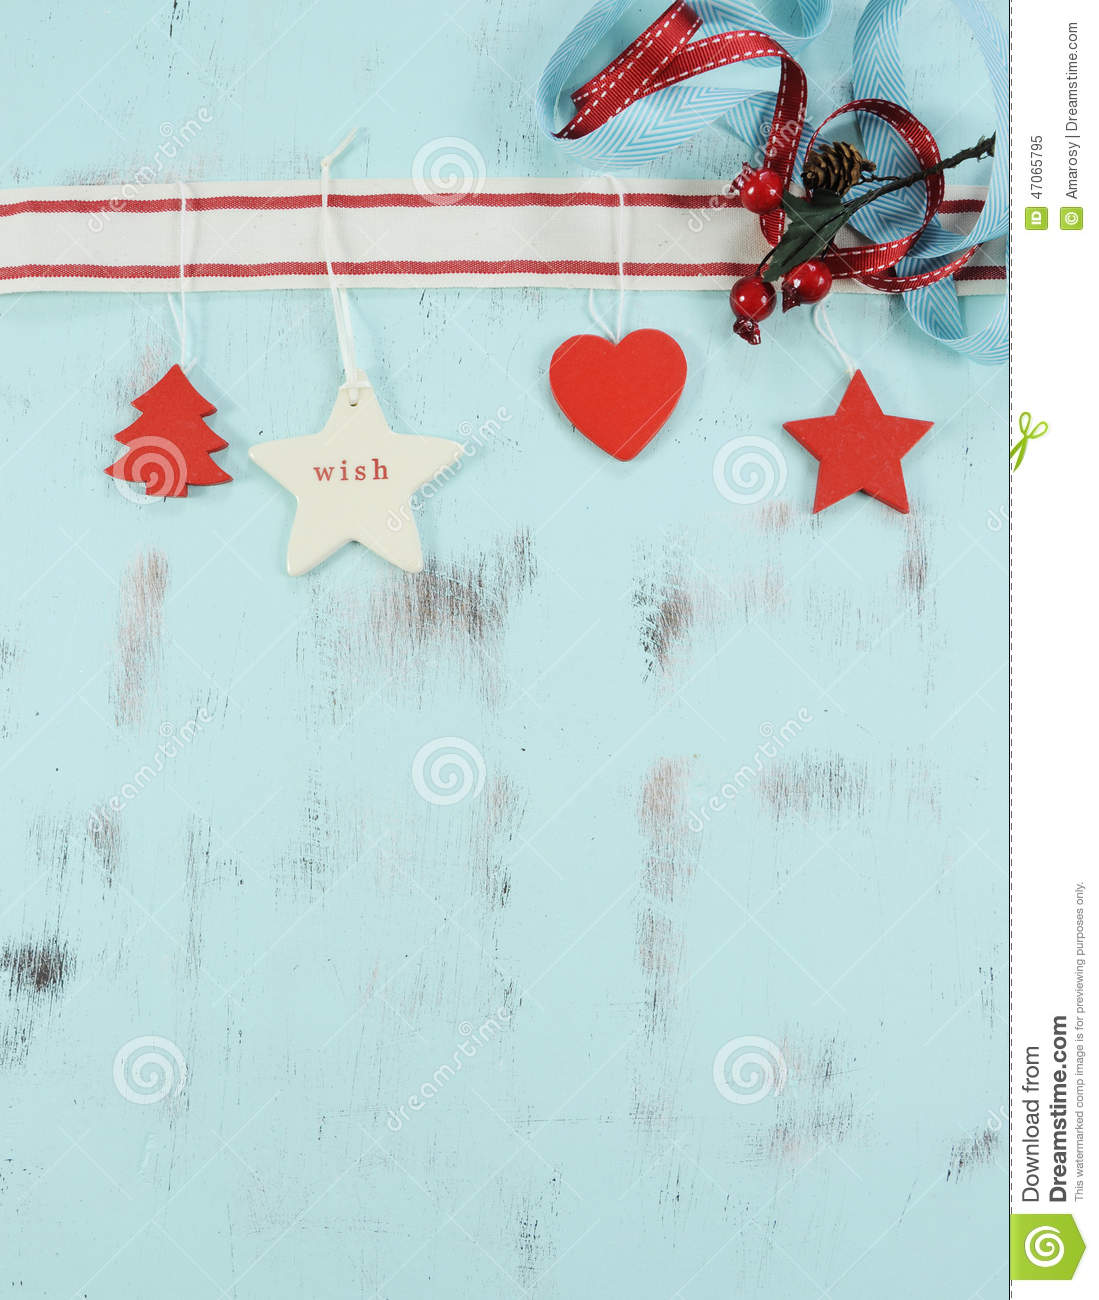 modern red and white hanging christmas decorations on aqua blue wood background vertical